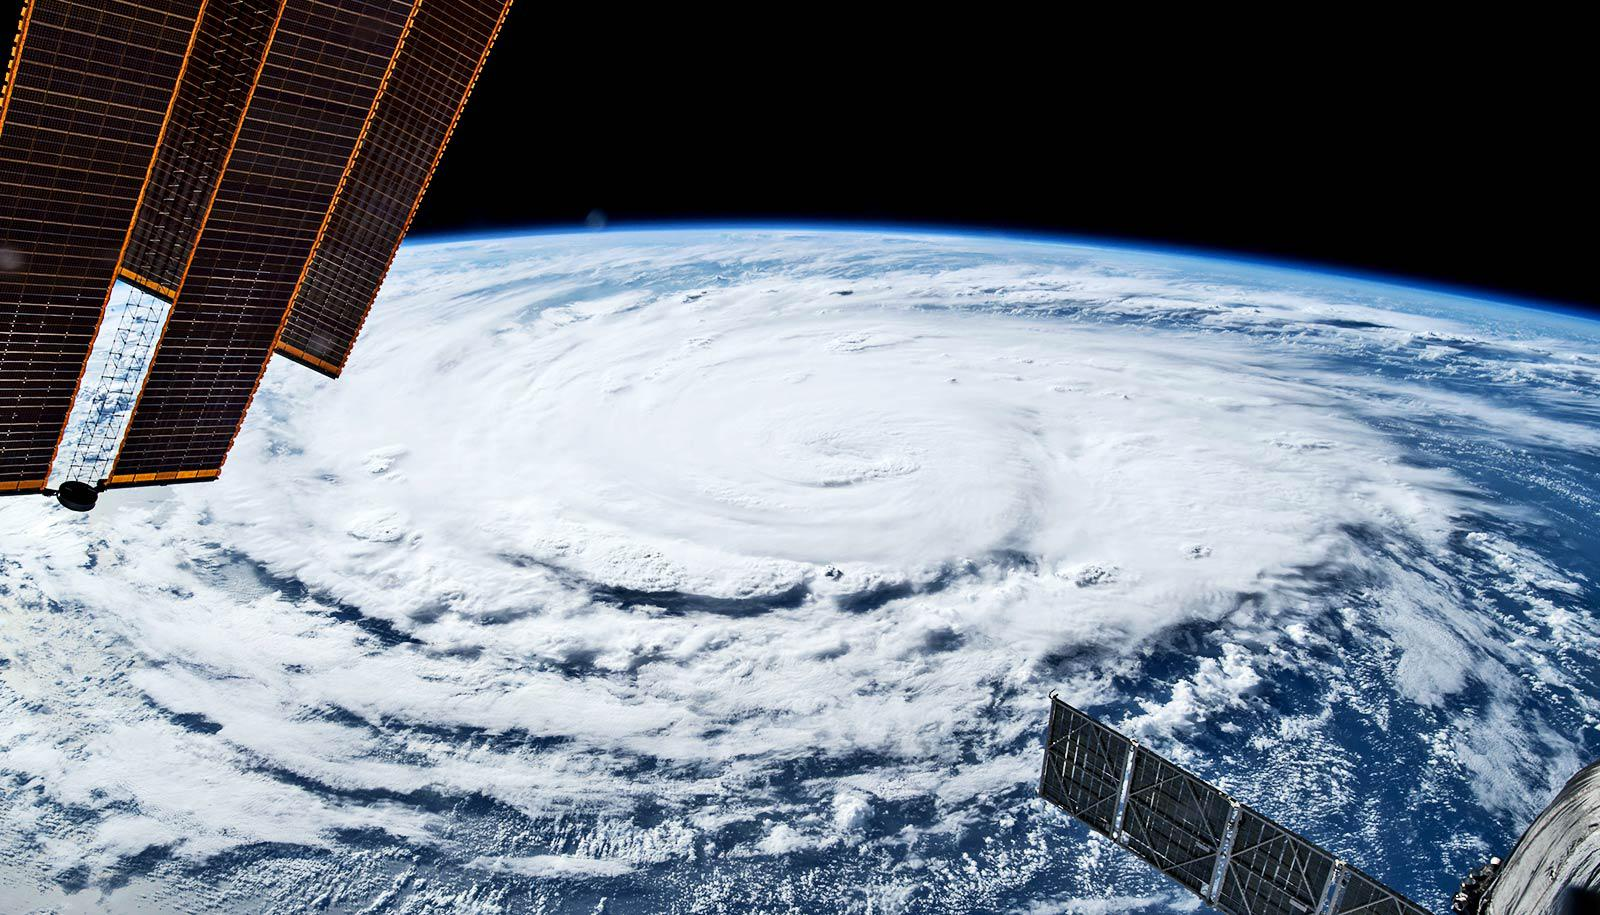 A hurricane swirls on Earth's surface as seen from space